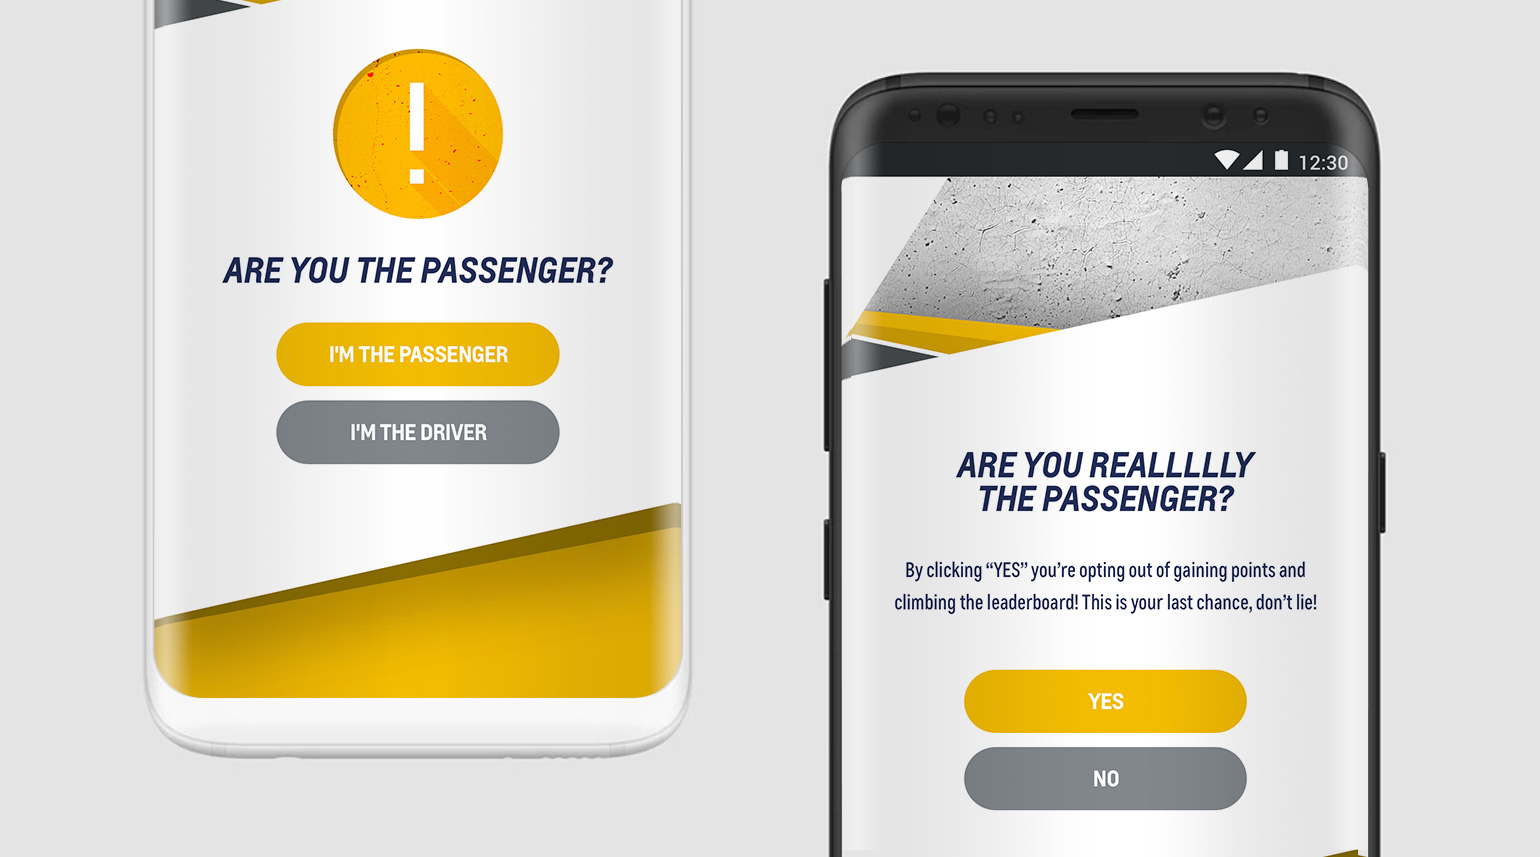 UI for passenger detection functionality.